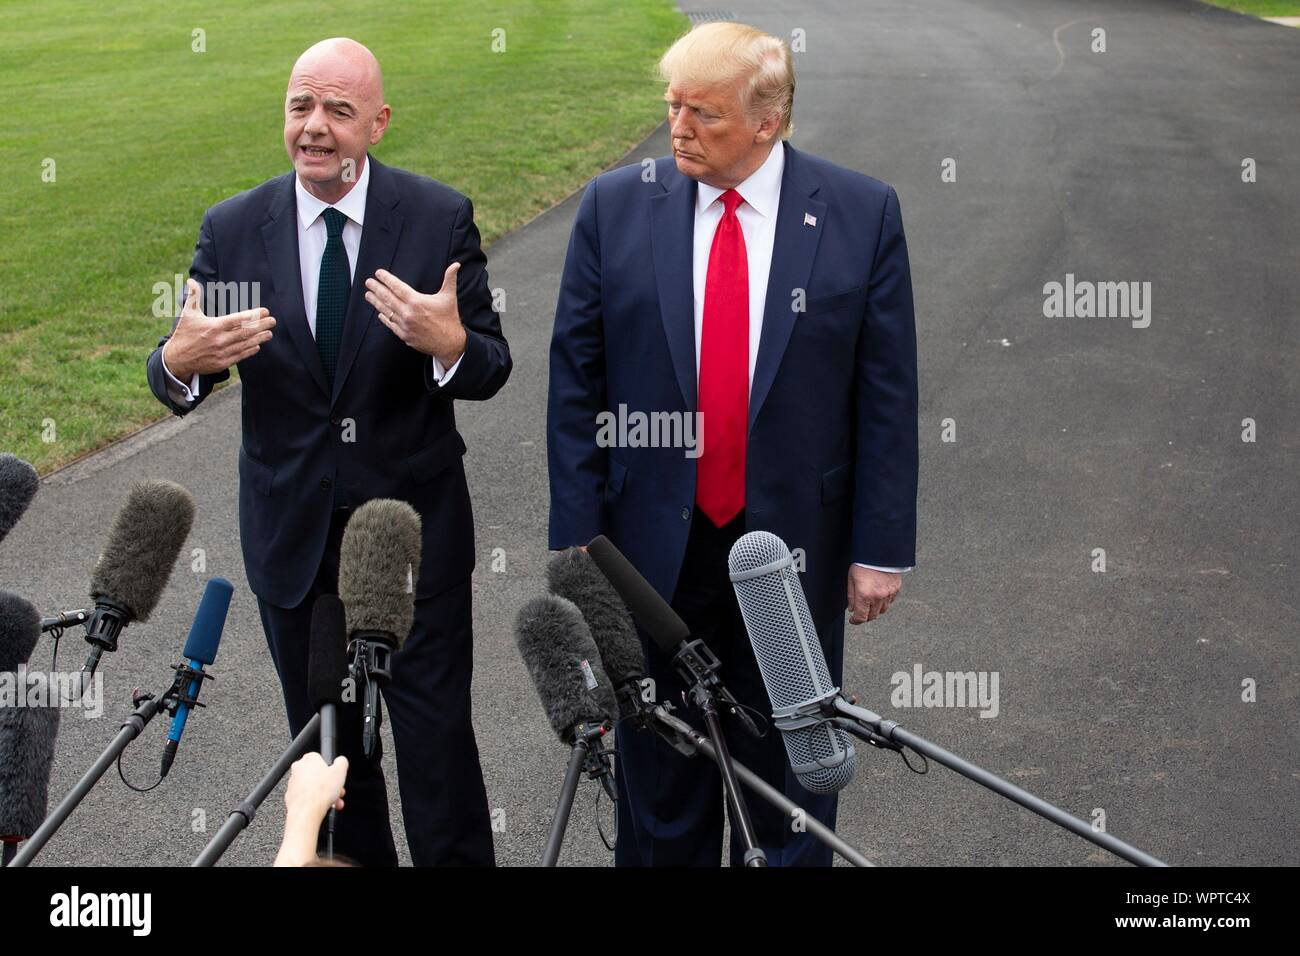 Washington, United States Of America. 09th Sep, 2019. United States President Donald J. Trump and the President of FIFA Gianni Infantino speak to the press as United States President Donald J. Trump departs the White House in Washington, DC, U.S. for a rally in North Carolina on September 9, 2019. Credit: Stefani Reynolds/CNP | usage worldwide Credit: dpa/Alamy Live News Stock Photo